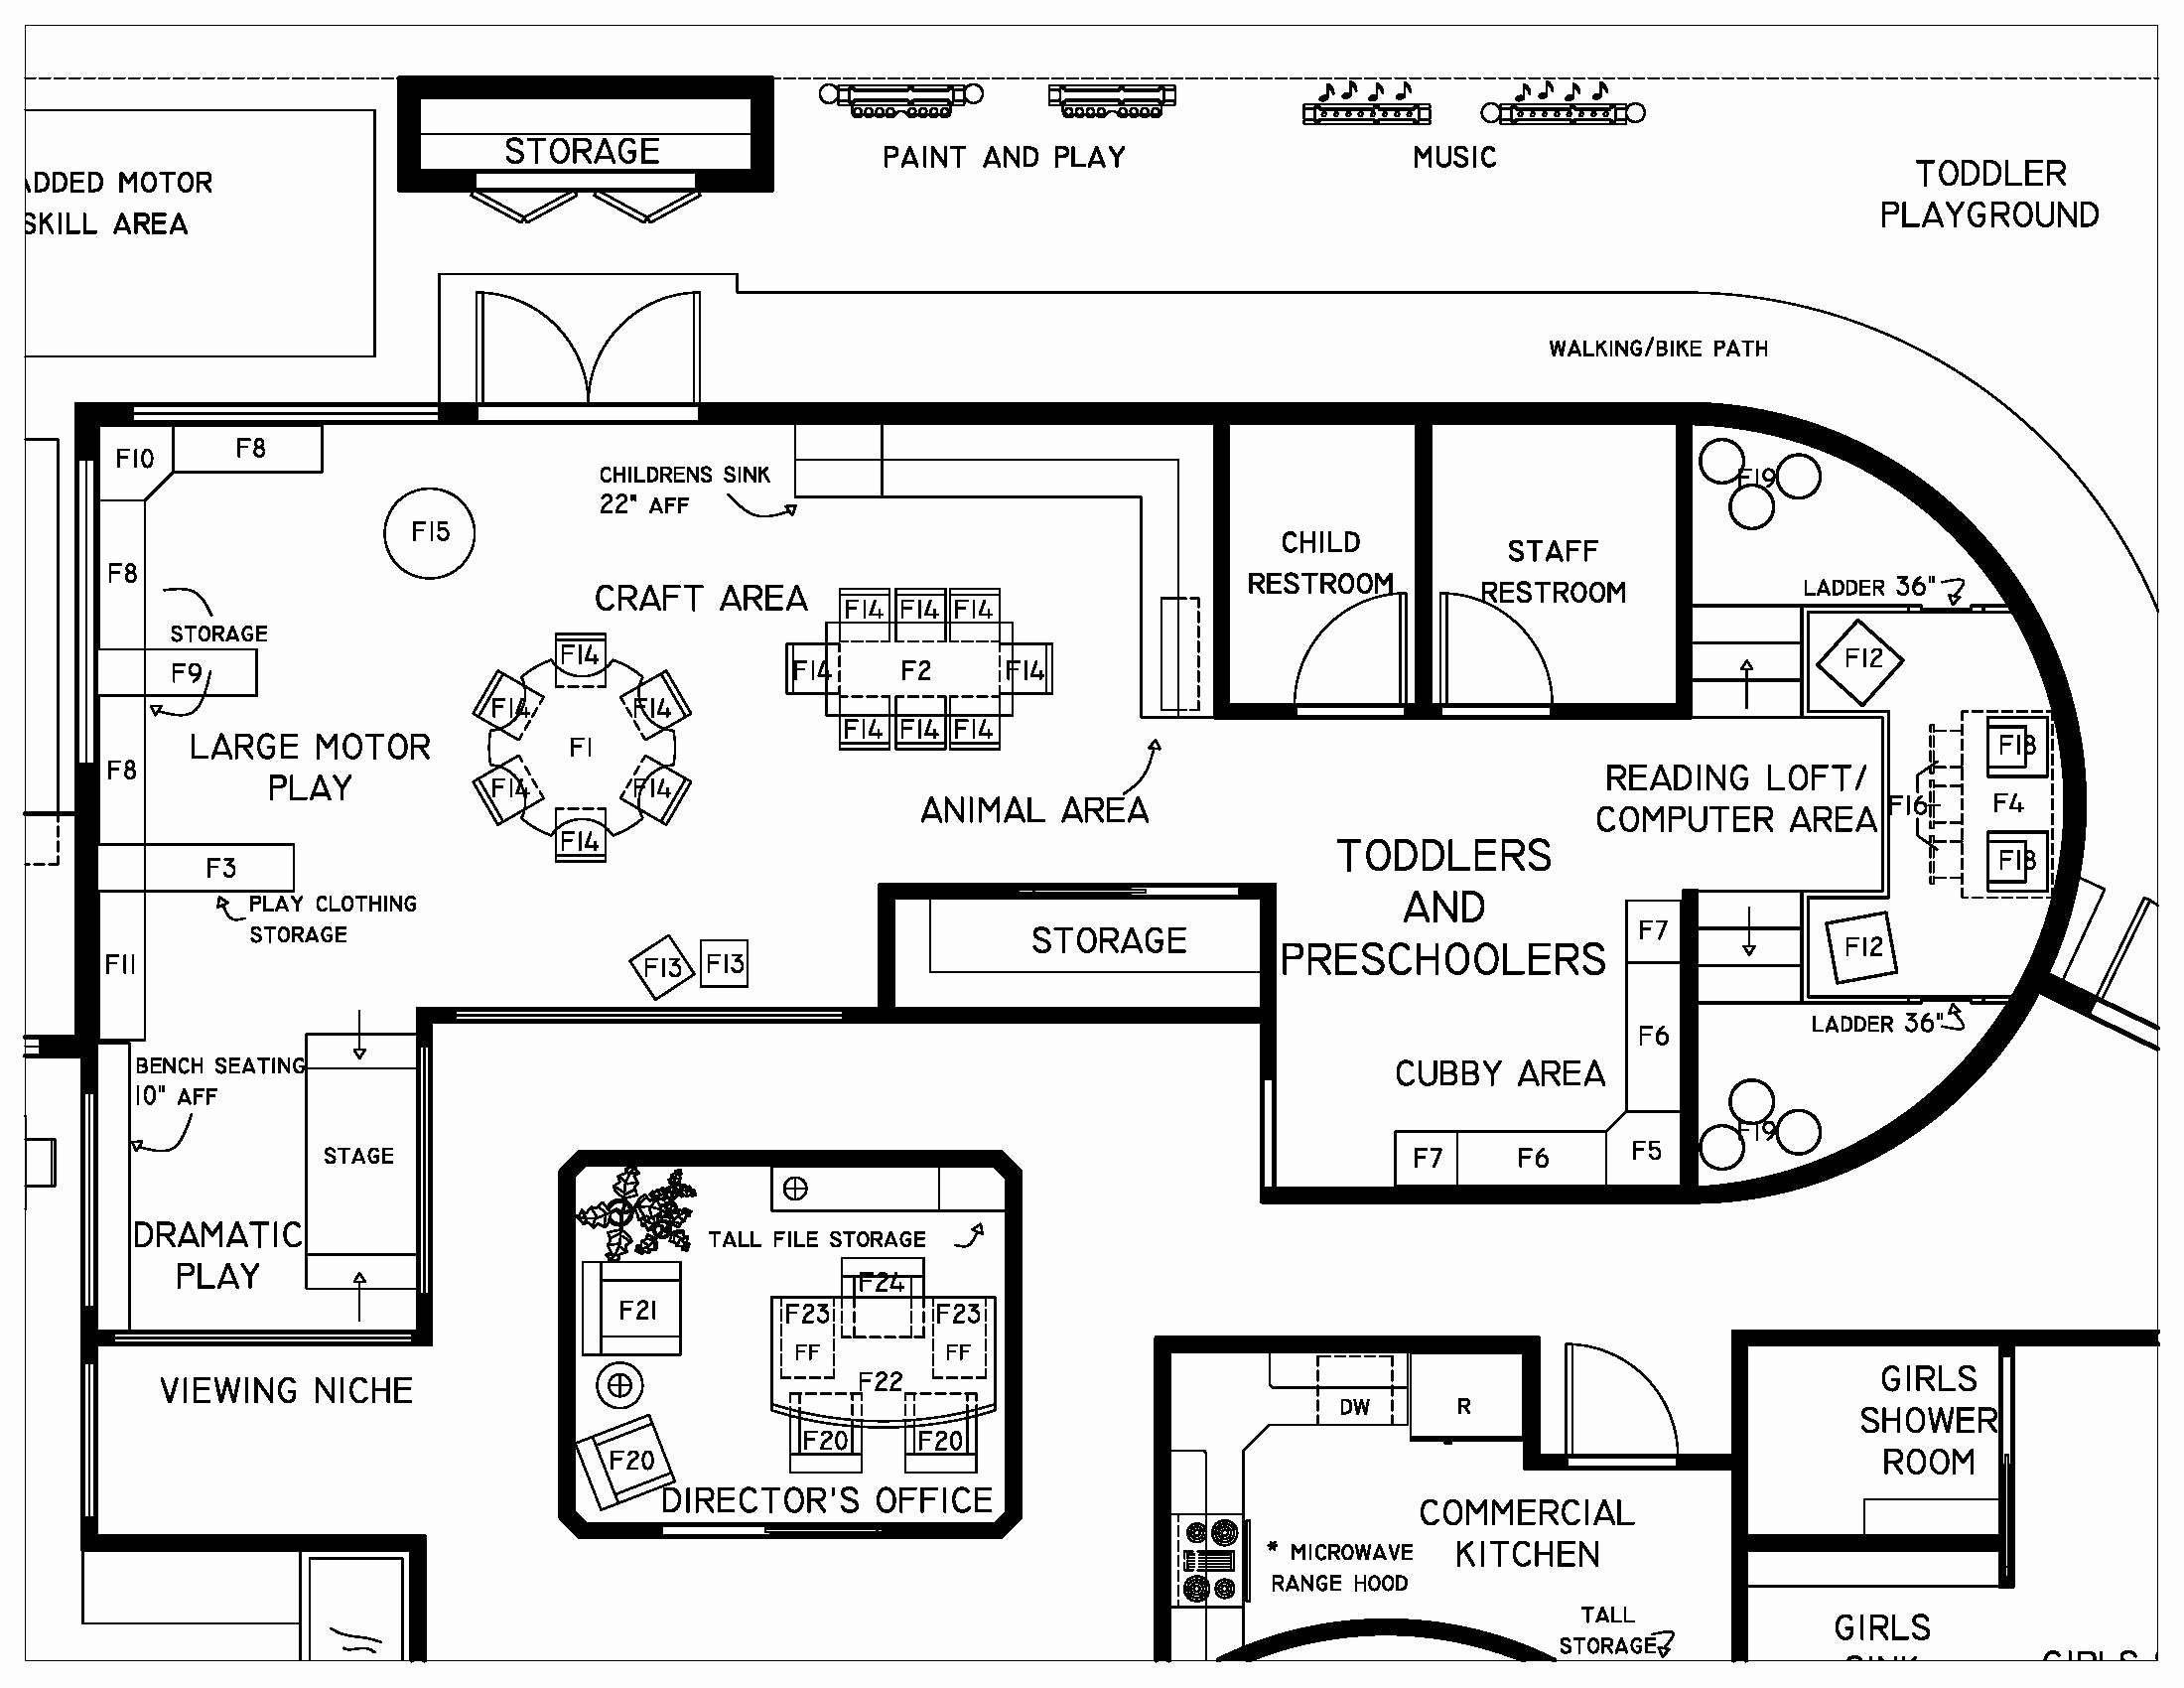 Drawing A Wiring Diagram software Refrence Floor Plan Mansion Floor Plan software Fresh House Plan S